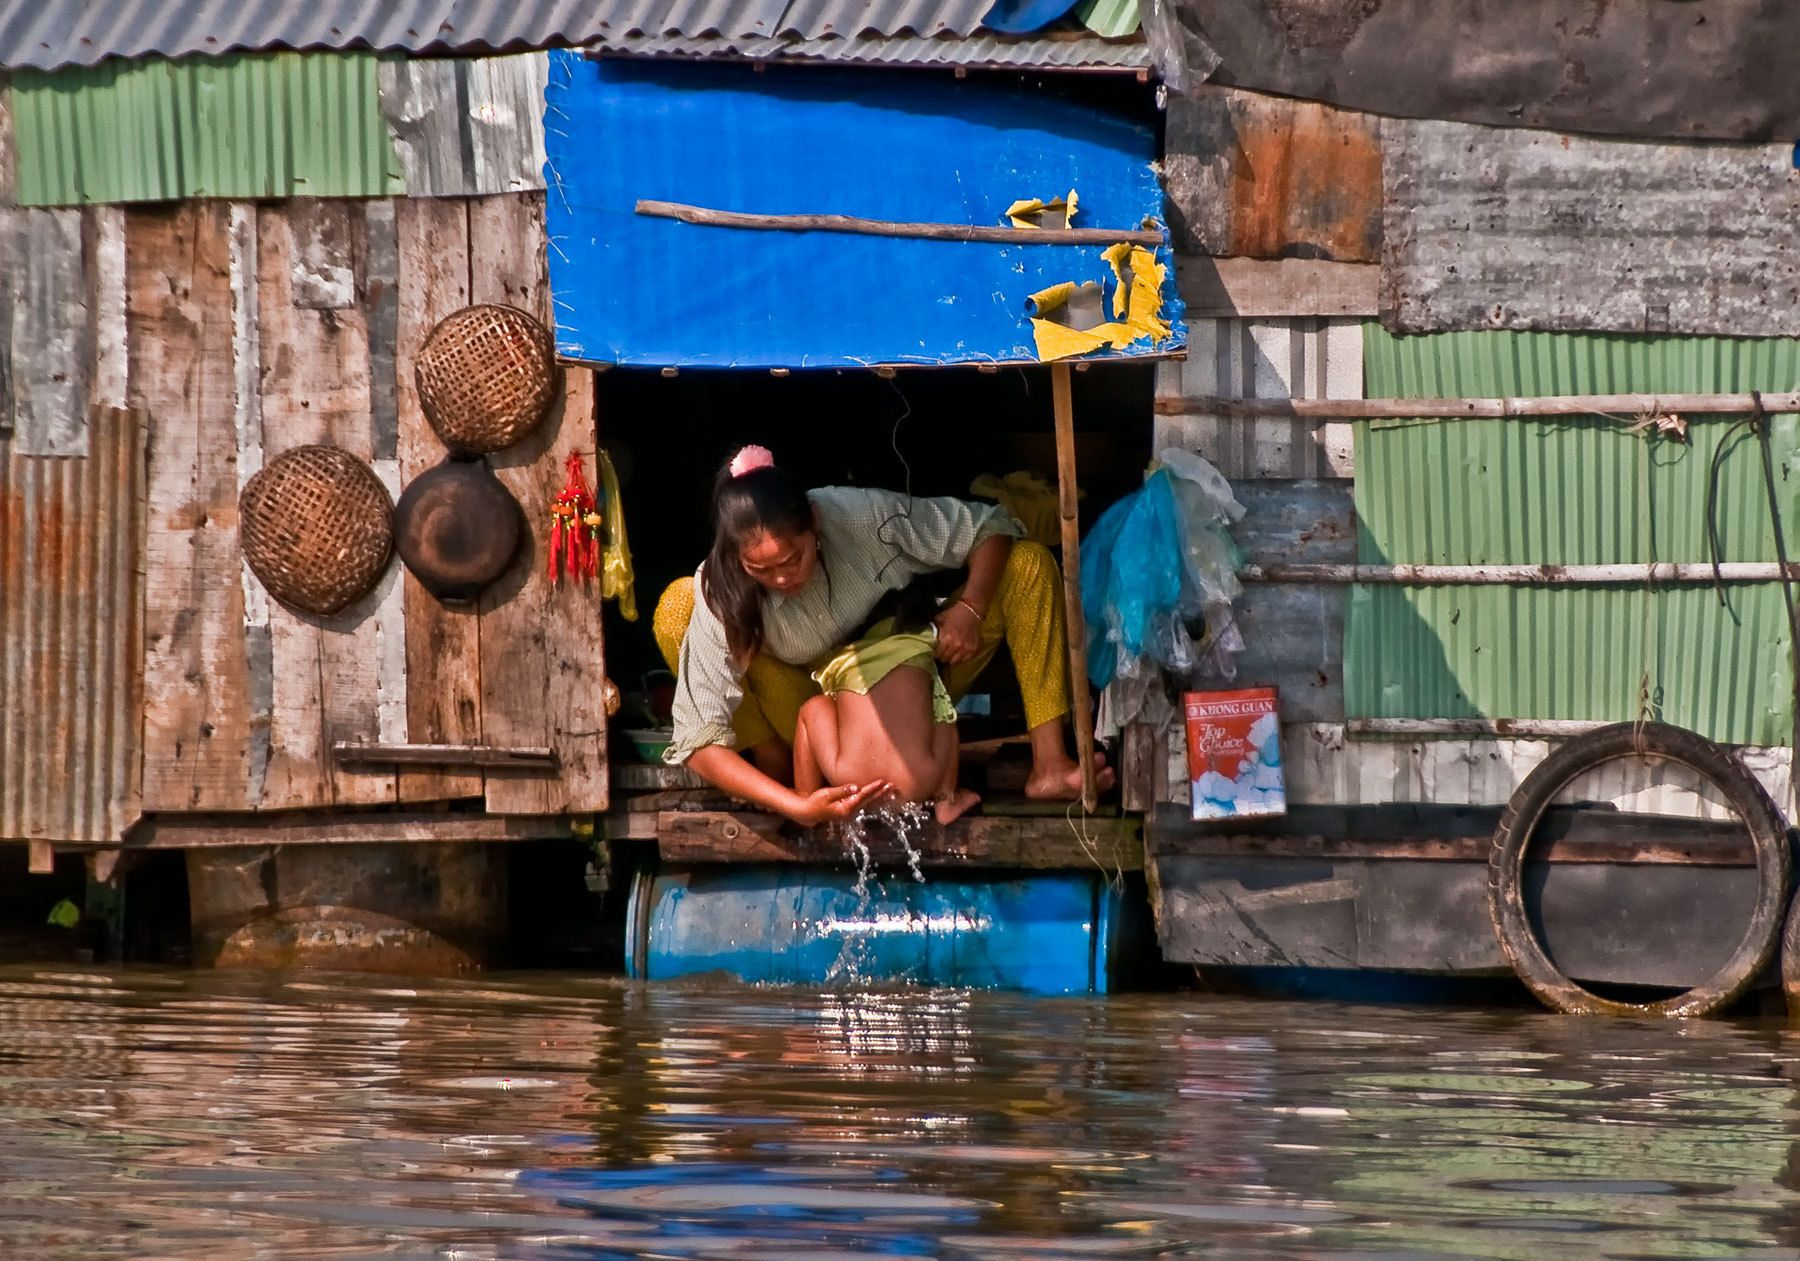 Mother bathing Child, Mekong Delta, Southern Vietnam